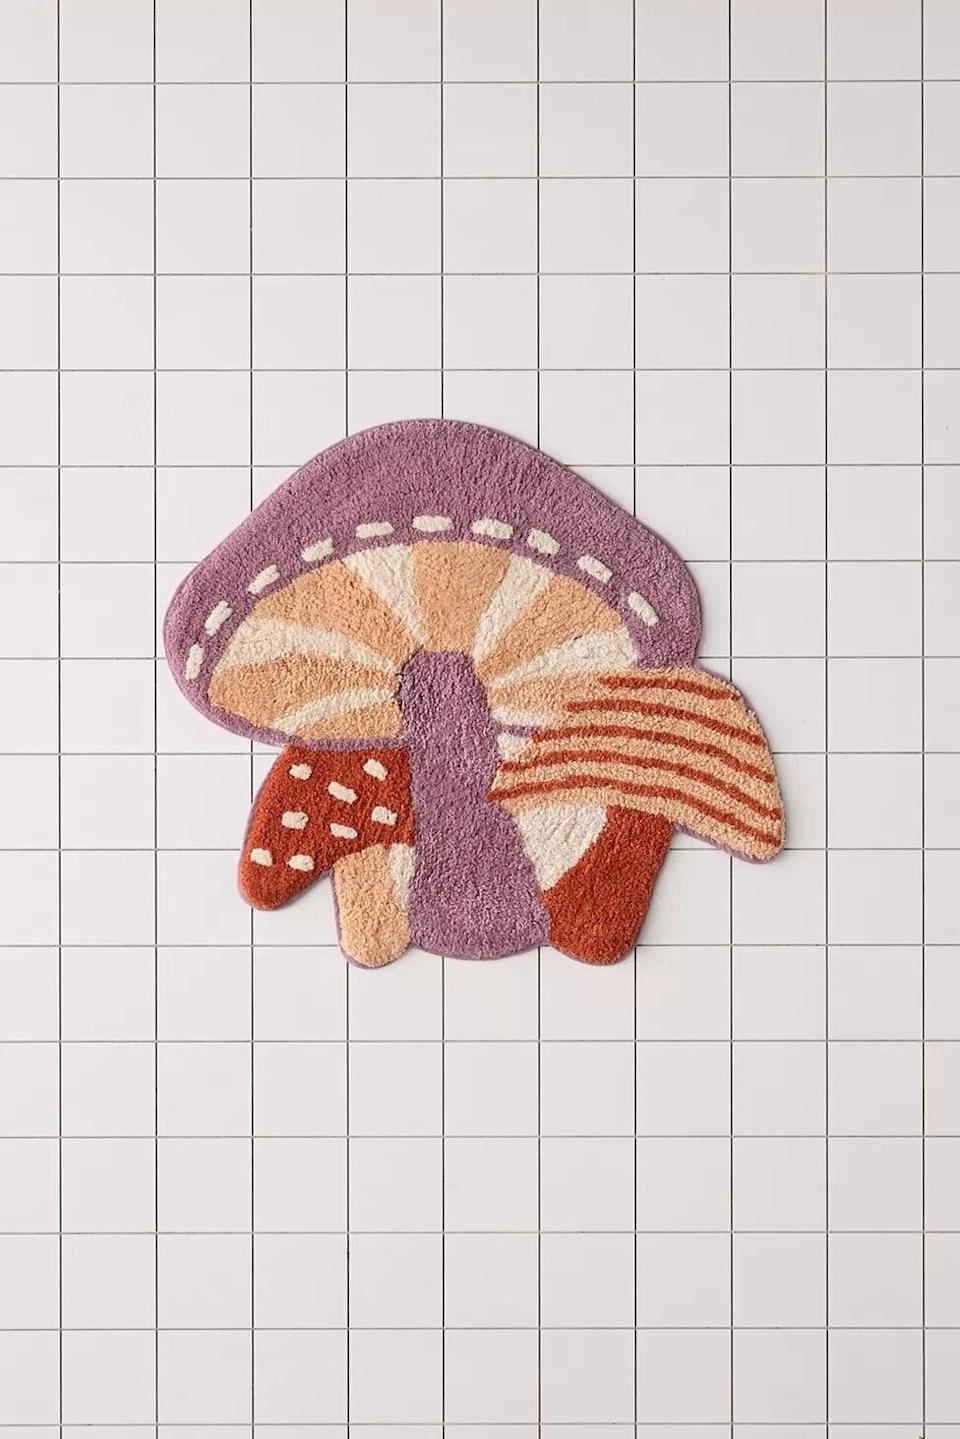 """<h2>Urban Outfitters Tufted Mushroom Bath Mat</h2><br>Funghi are, by nature, funky — so, we can definitely get down with this groovy tufted floor topper.<br><br><em>Shop <strong><a href=""""https://www.urbanoutfitters.com/shop/mushroom-tufted-bath-mat"""" rel=""""nofollow noopener"""" target=""""_blank"""" data-ylk=""""slk:Urban Outfitters"""" class=""""link rapid-noclick-resp"""">Urban Outfitters</a></strong></em><br><br><strong>Urban Outfitters</strong> Mushroom Tufted Bath Mat, $, available at <a href=""""https://go.skimresources.com/?id=30283X879131&url=https%3A%2F%2Fwww.urbanoutfitters.com%2Fshop%2Fmushroom-tufted-bath-mat"""" rel=""""nofollow noopener"""" target=""""_blank"""" data-ylk=""""slk:Urban Outfitters"""" class=""""link rapid-noclick-resp"""">Urban Outfitters</a>"""